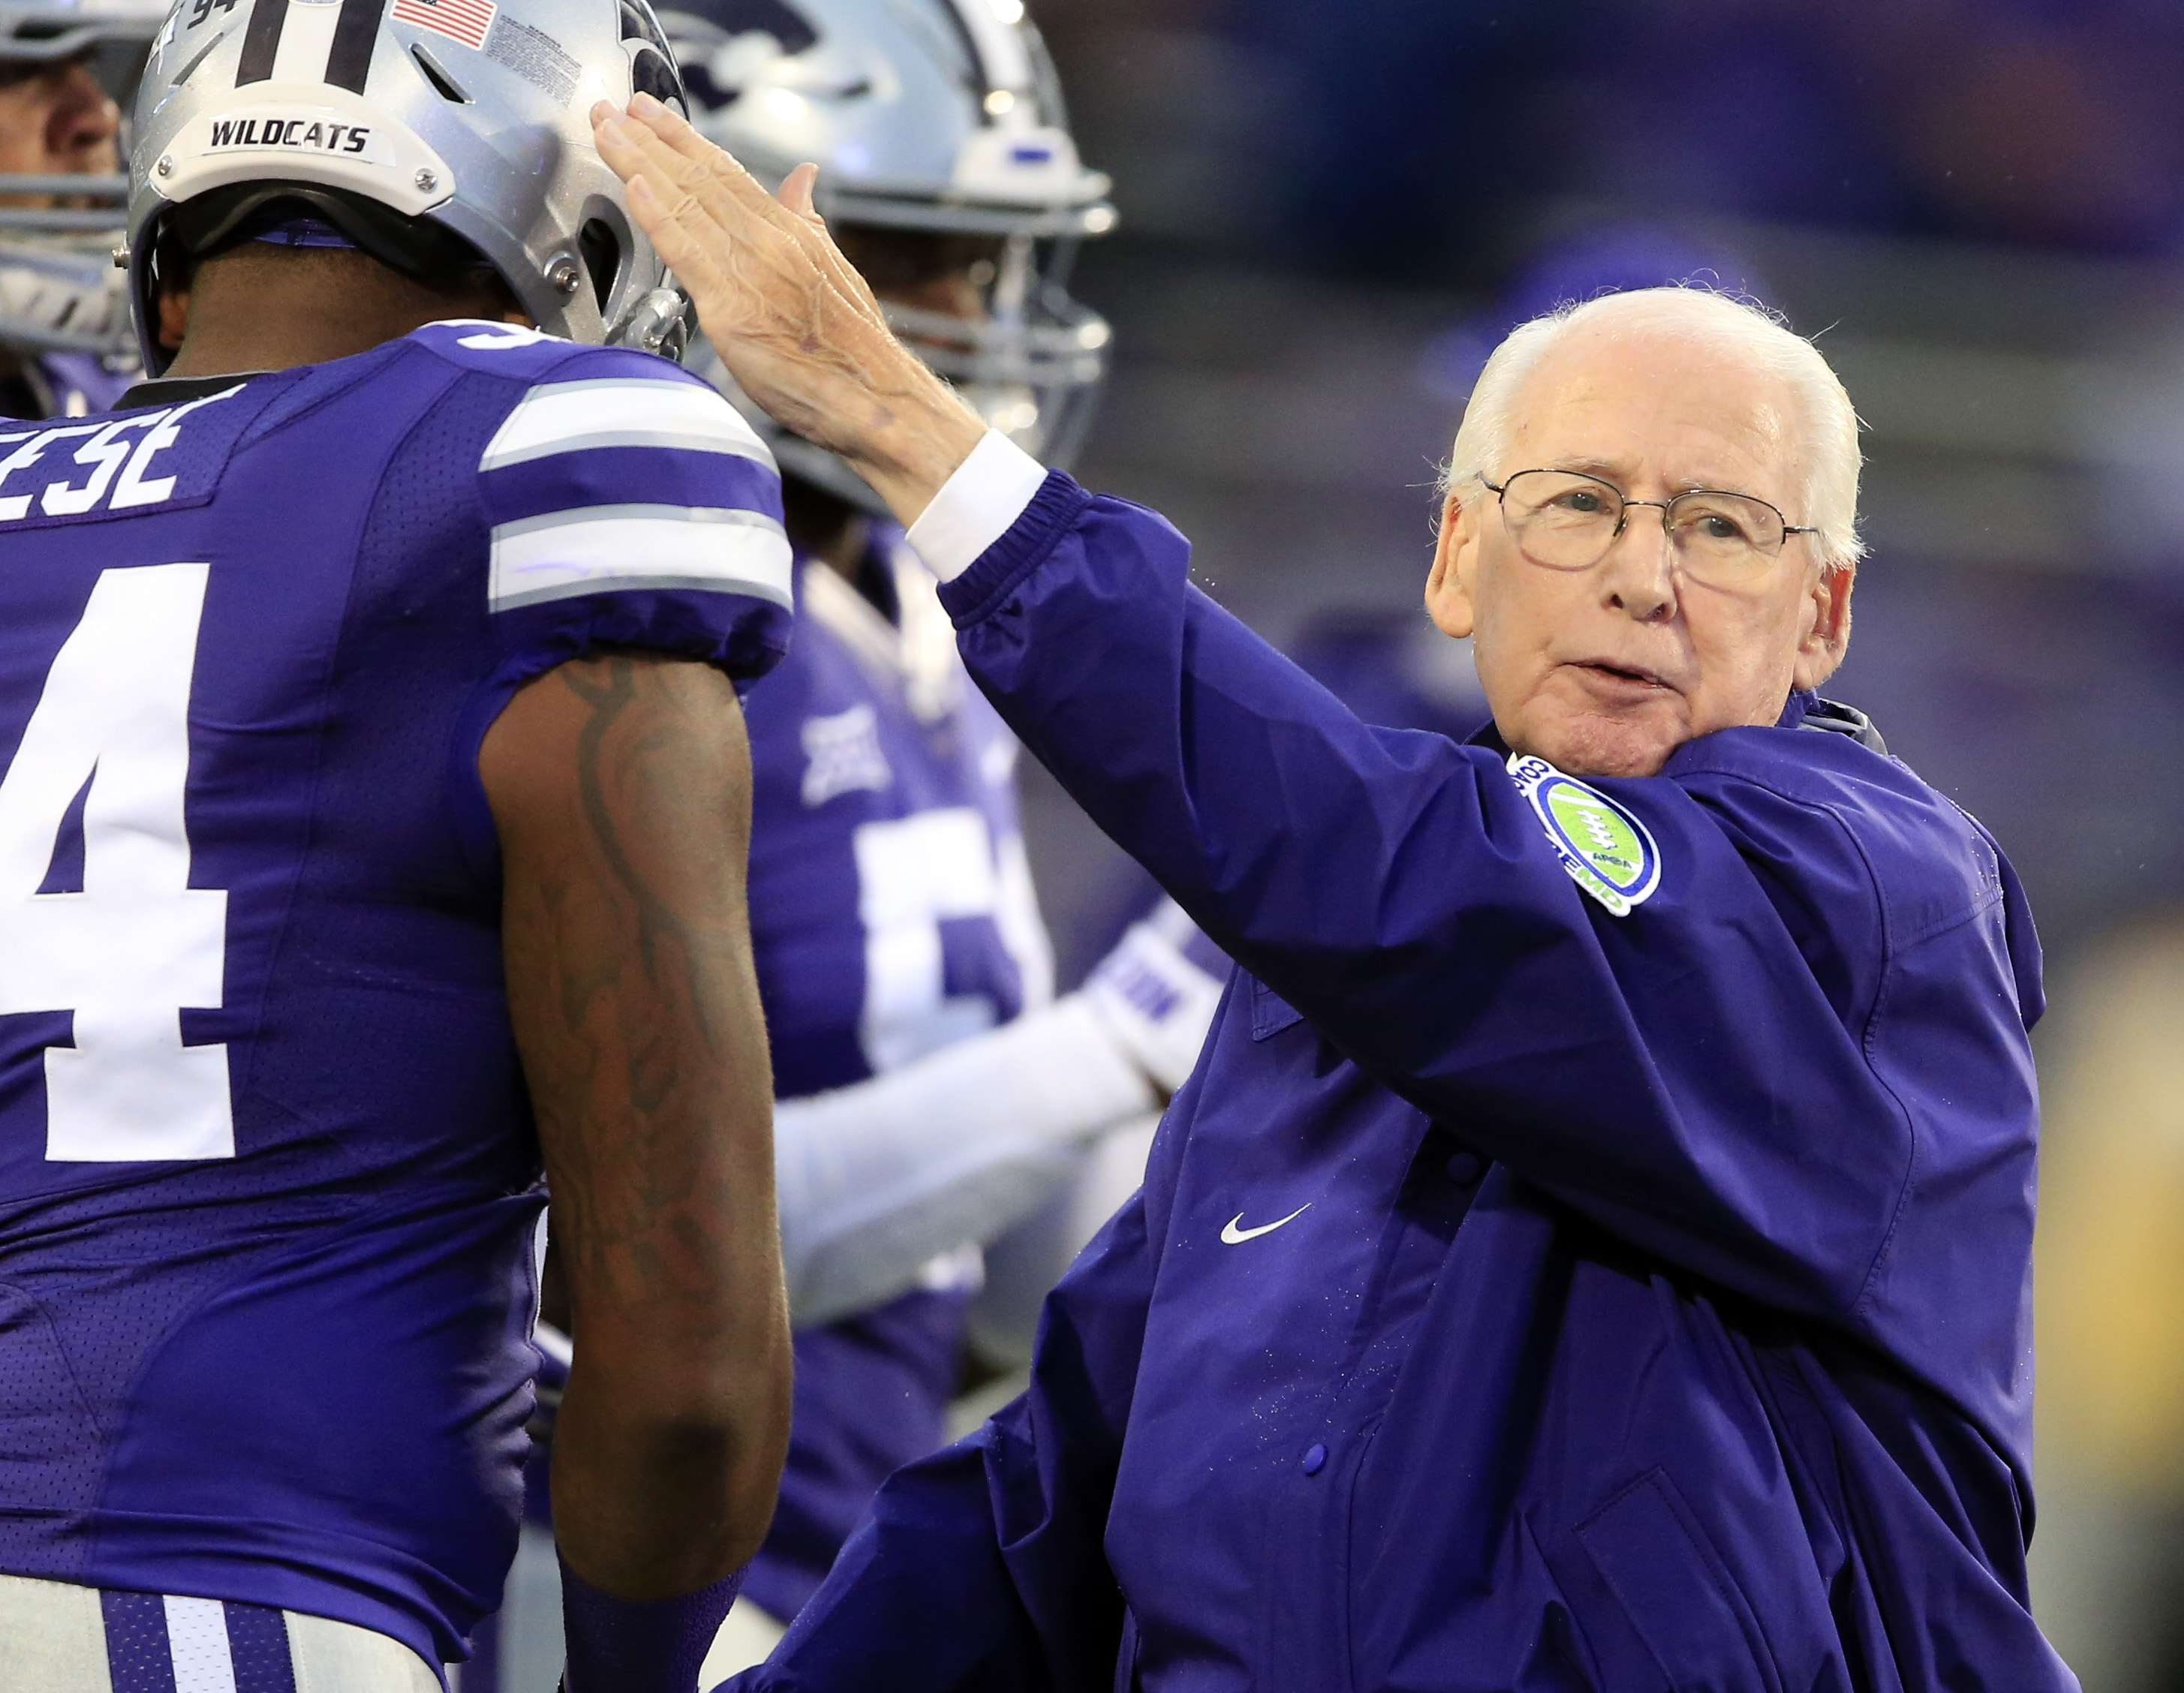 Kansas State coach Bill Snyder pats the shoulder of defensive end C.J. Reese (94) before the team's NCAA college football game against Missouri State in Manhattan, Kan., Saturday, Sept. 24, 2016. (AP Photo/Orlin Wagner)